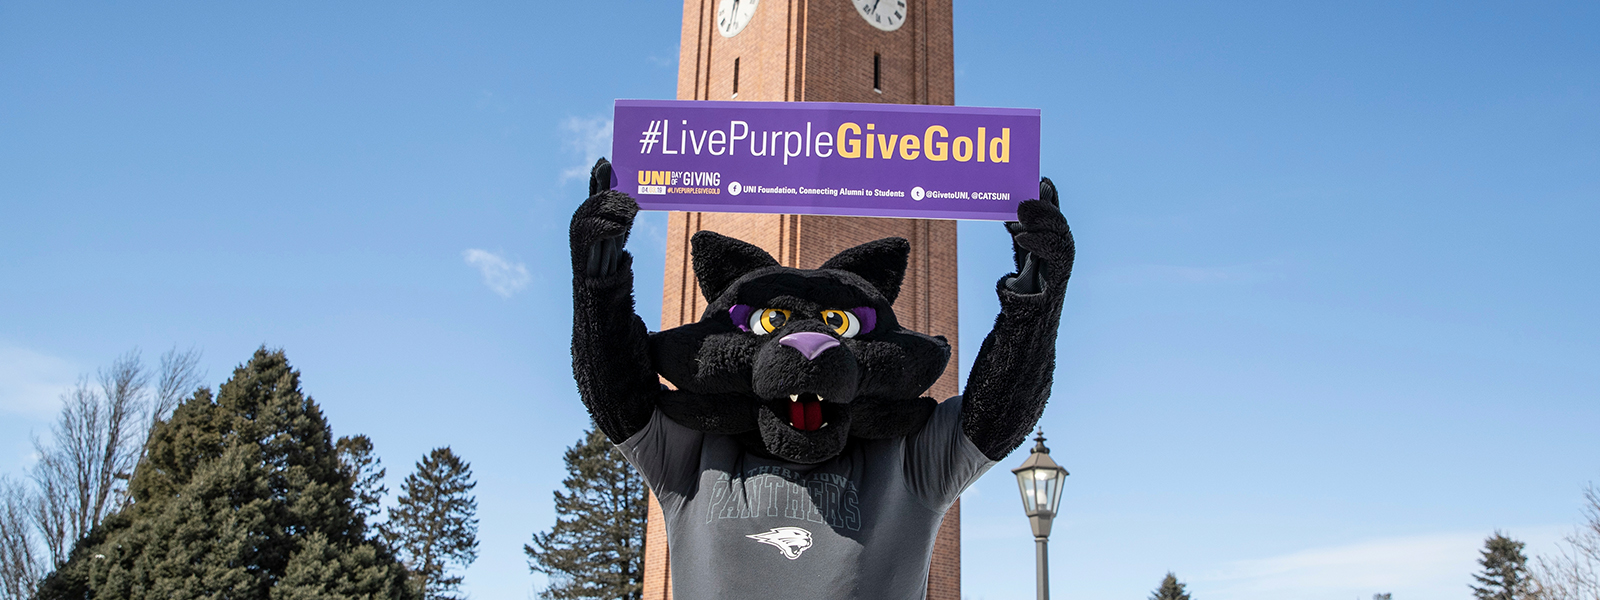 TC holding #LivePurpleGiveGold sign in front of the Campanile